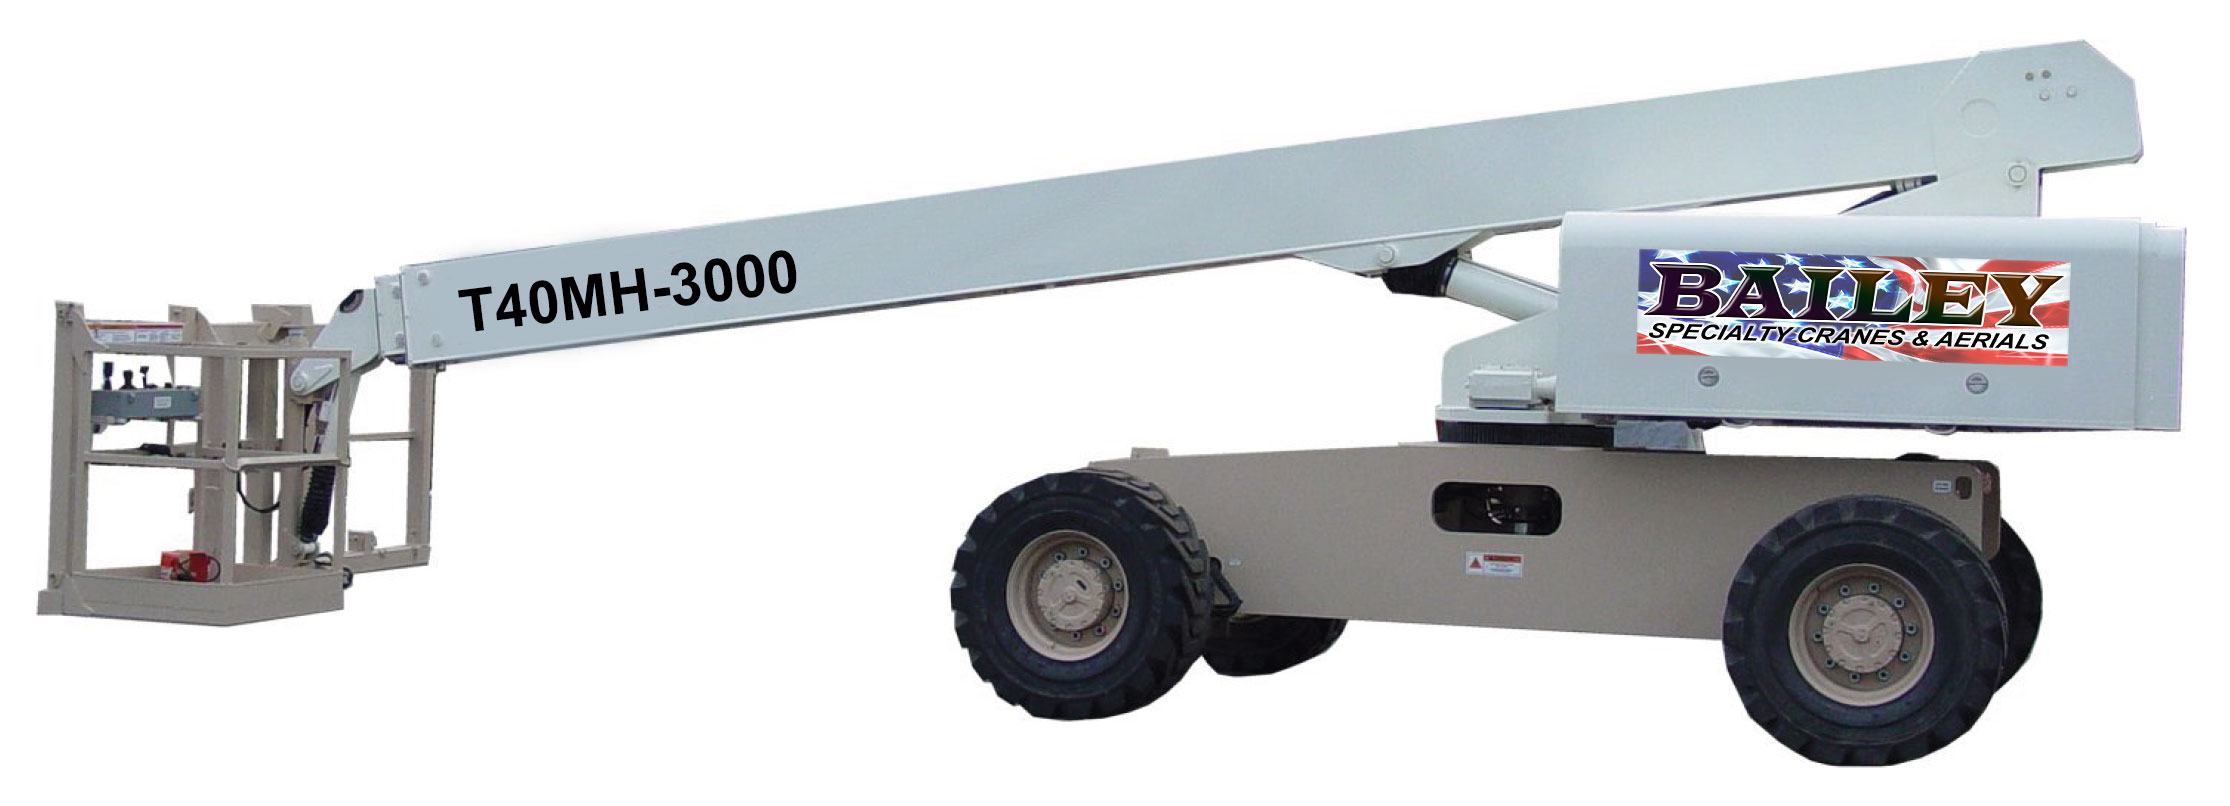 T40MH-3000 High Capacity Boom Lif